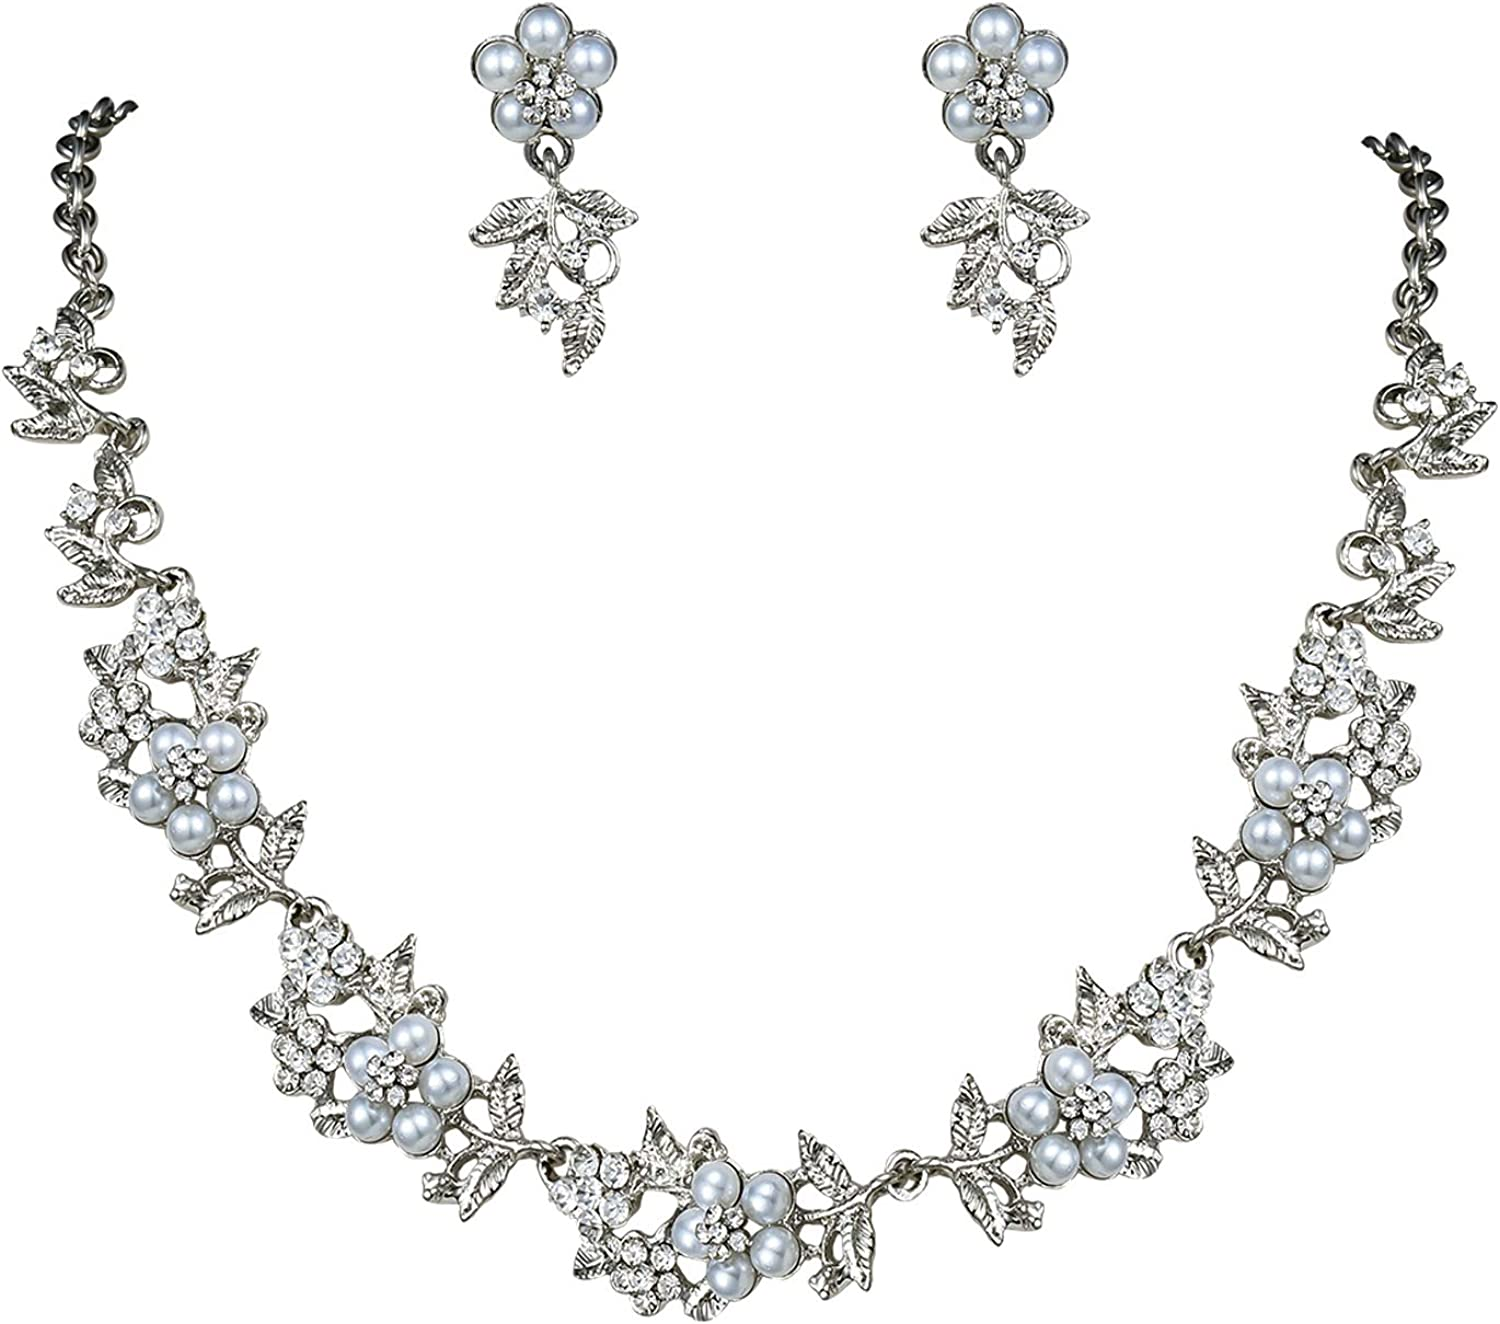 White Pearl /& Rhinestone Formal Rhinestone Crystal Necklace Set Wedding Bridal